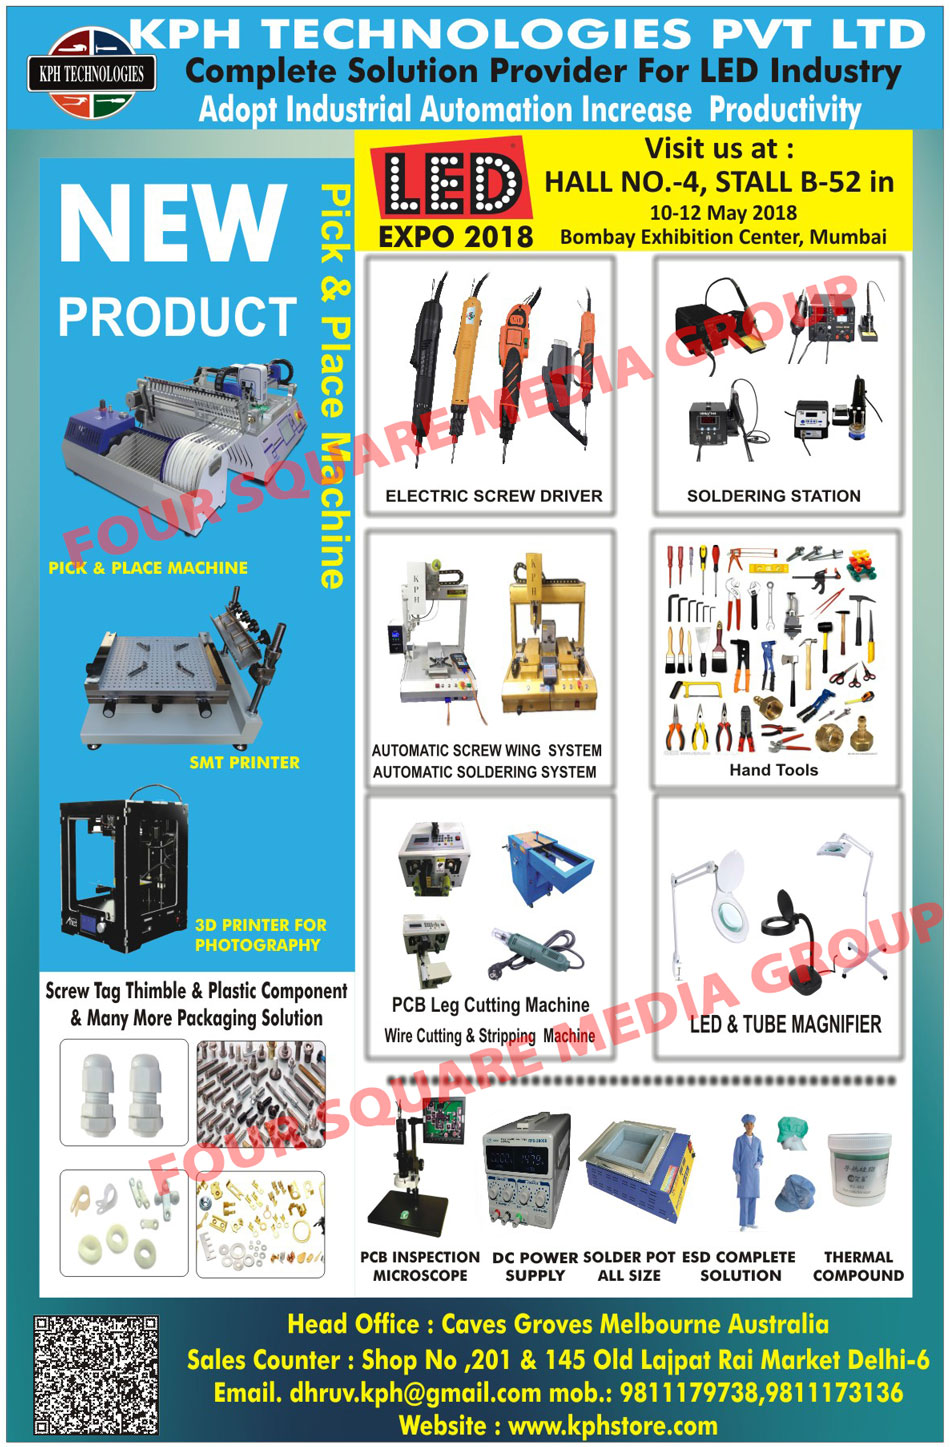 Rivet Guns, Electric Screw Driver, Wire Stripper, Cable Tiles, Fastening Systems, Wire Connector, Wire Terminals, Network Tools, Glue Gun, Glue Sticks, Torque Screw Driver, Electric Screw Driver, Screws, Pneumatic Tools, Cable Cutters, RTV Guns, Reinforced Thermally Conductive Silicone Elastomers, Led Light Assembly Plastic Components, Automatic Vacuum Pen for Handing SMD Components, Induction Hot Plate for Soldering SMD Components, Solder Paste for SMD Components, Led Light Assembly Plastic Components, SMT Pick, SMT Place, Wire Cutting Machines, Wire Stripping Machines, Led New Light Source Unlead Oven, Vacuum Pick, Vacuum Place, Power Analizers, Led Bulb PCB Pressing Machines, Led Bulb Printed Circuit Board Pressing Machines, Digital Luxmeters, Thermal Compound, DC Power Supply, DC Power Supplies, Digital Microscop, Thermally Conductive Silicone Adhesives, Soldering Pots, Thermal Tapes, Screw Feeders, PG Glands, P Clips, Pclips, Cable , HOT Plates, Glue Dispensers, Solder Paste, Thimble Tags, Down Light Clips, Led Equipments, Led Machines Reflow Ovens, Testing, Pinning, Soldering Stations, Solder Pot